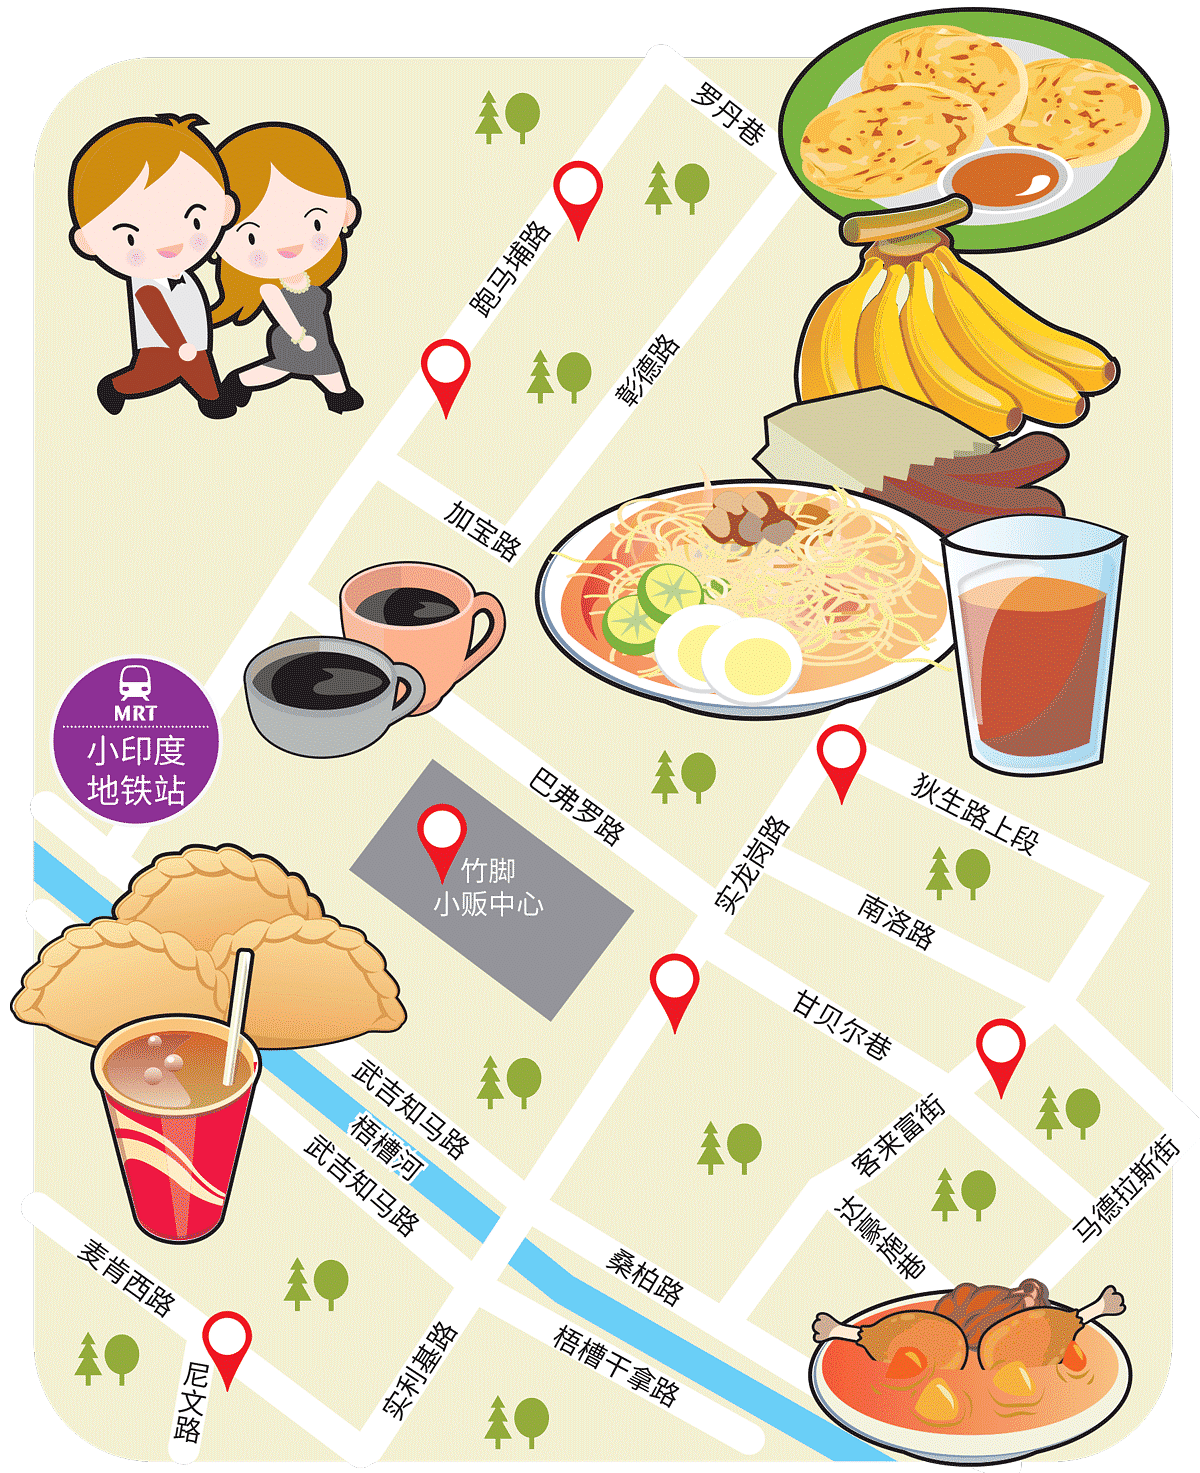 20191203-wanbao-food-search-little-india-mrt-cover.png